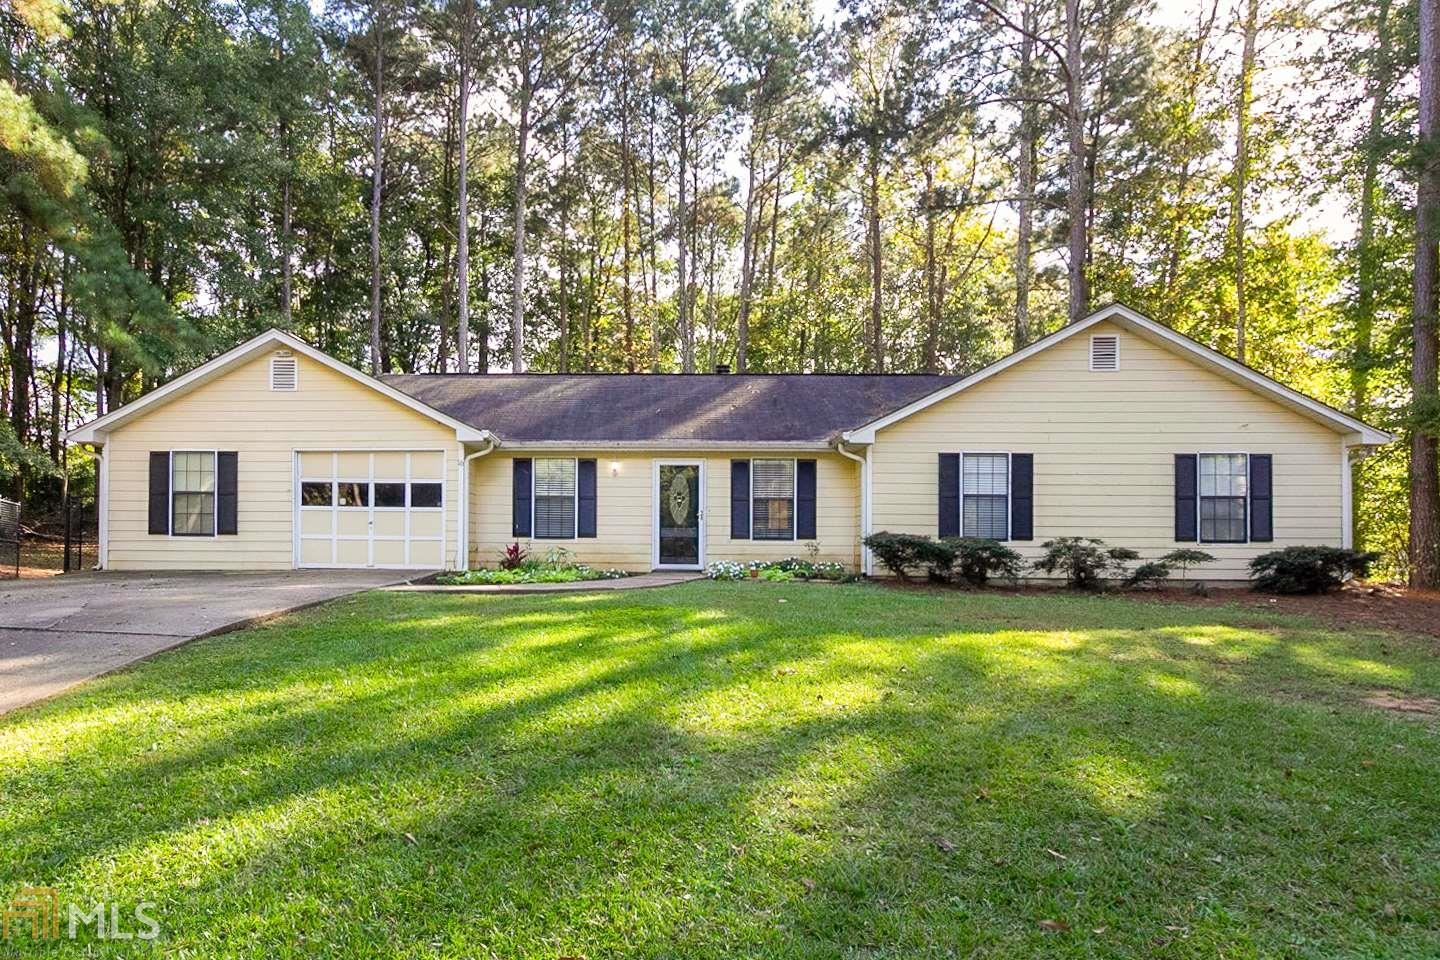 16 Pond, Stockbridge, GA 30281 - #: 8879547